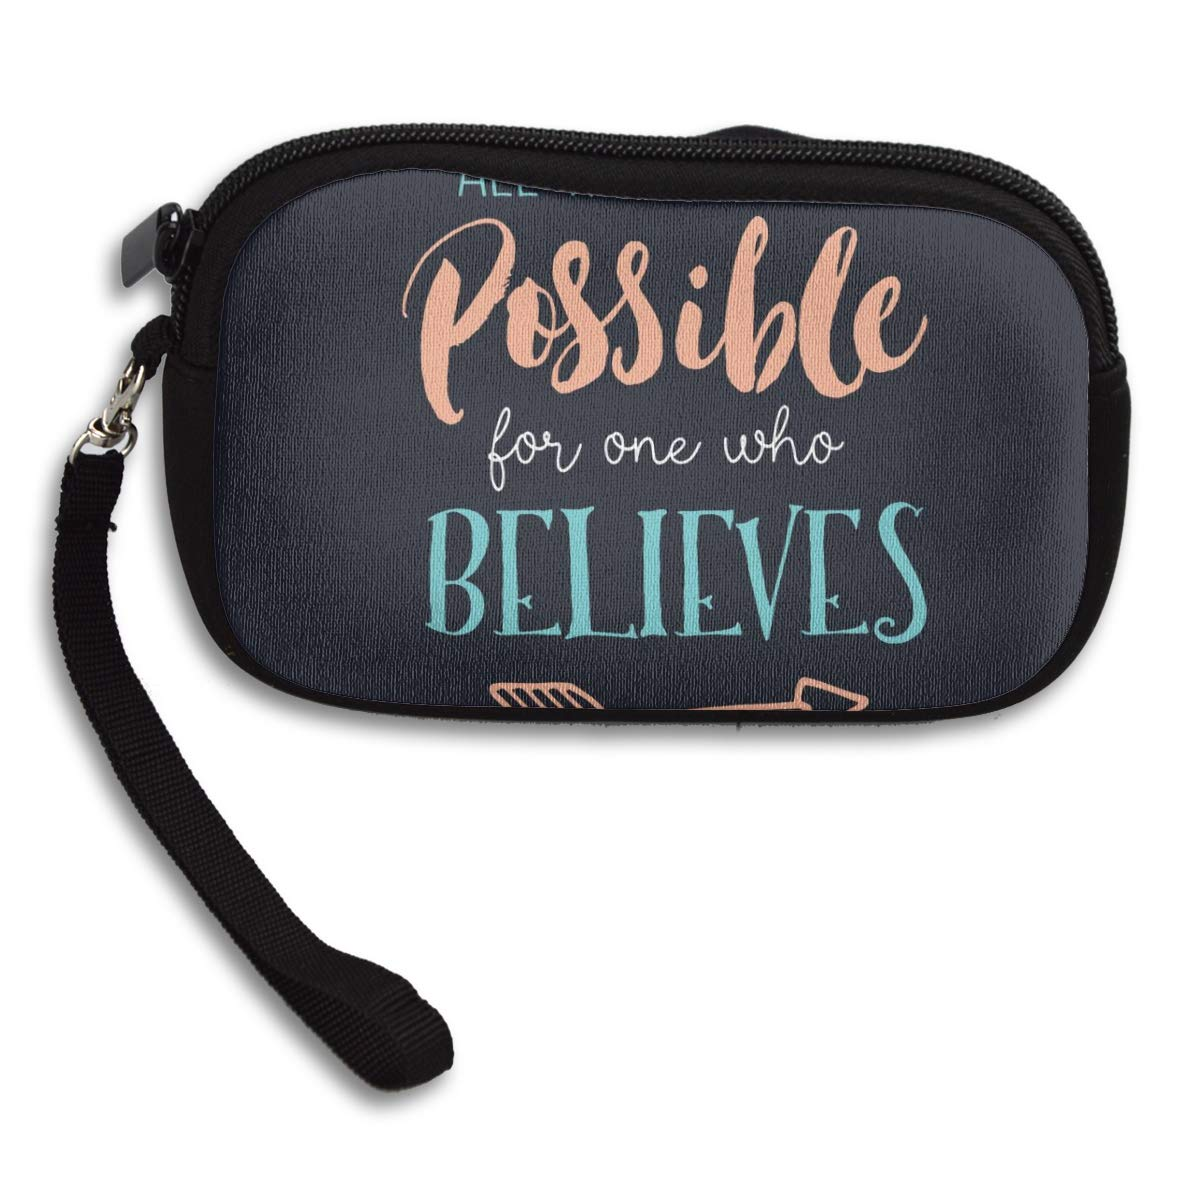 Quotes Inspirational Believes Biblical Coin Pouch Clutch Purse Wristlet Wallet Phone Card Holder Handbag